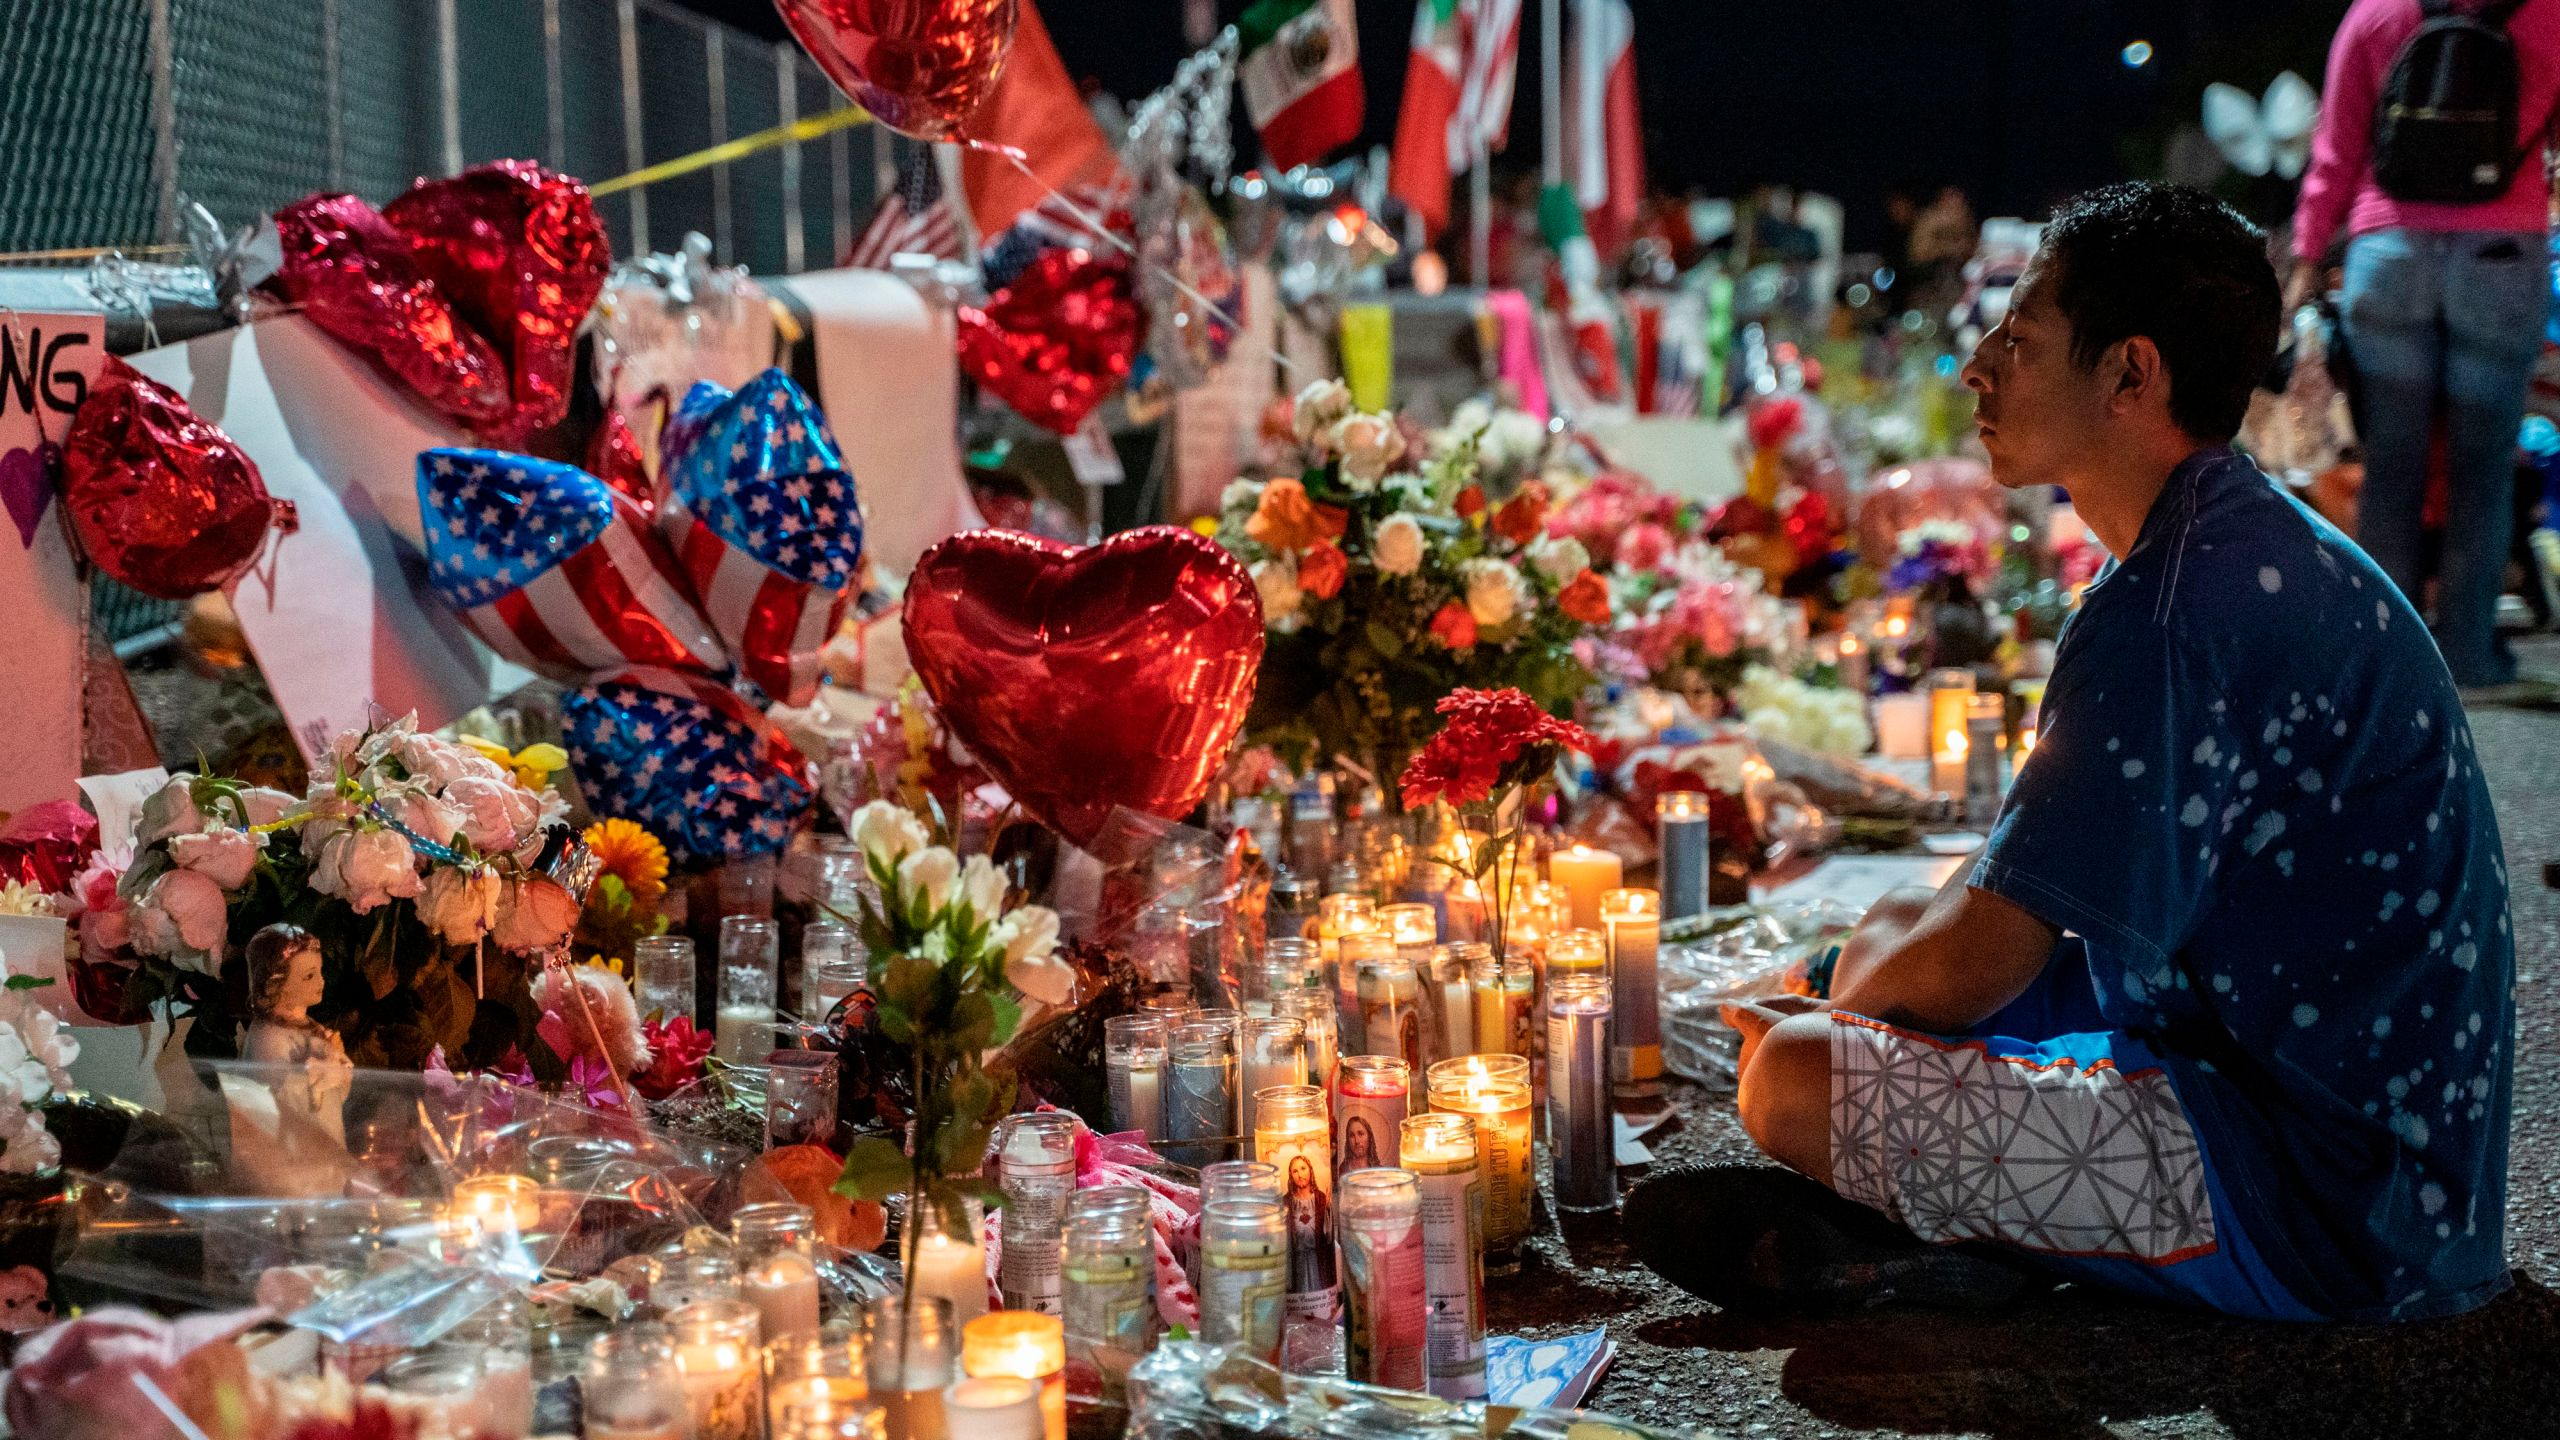 Abel Valenzuela, an El Paso local, meditates in front of the makeshift memorial for shooting victims at the Cielo Vista Mall Walmart in El Paso, Texas, on Aug. 8, 2019. (Credit: Paul Ratje / AFP / Getty Images)